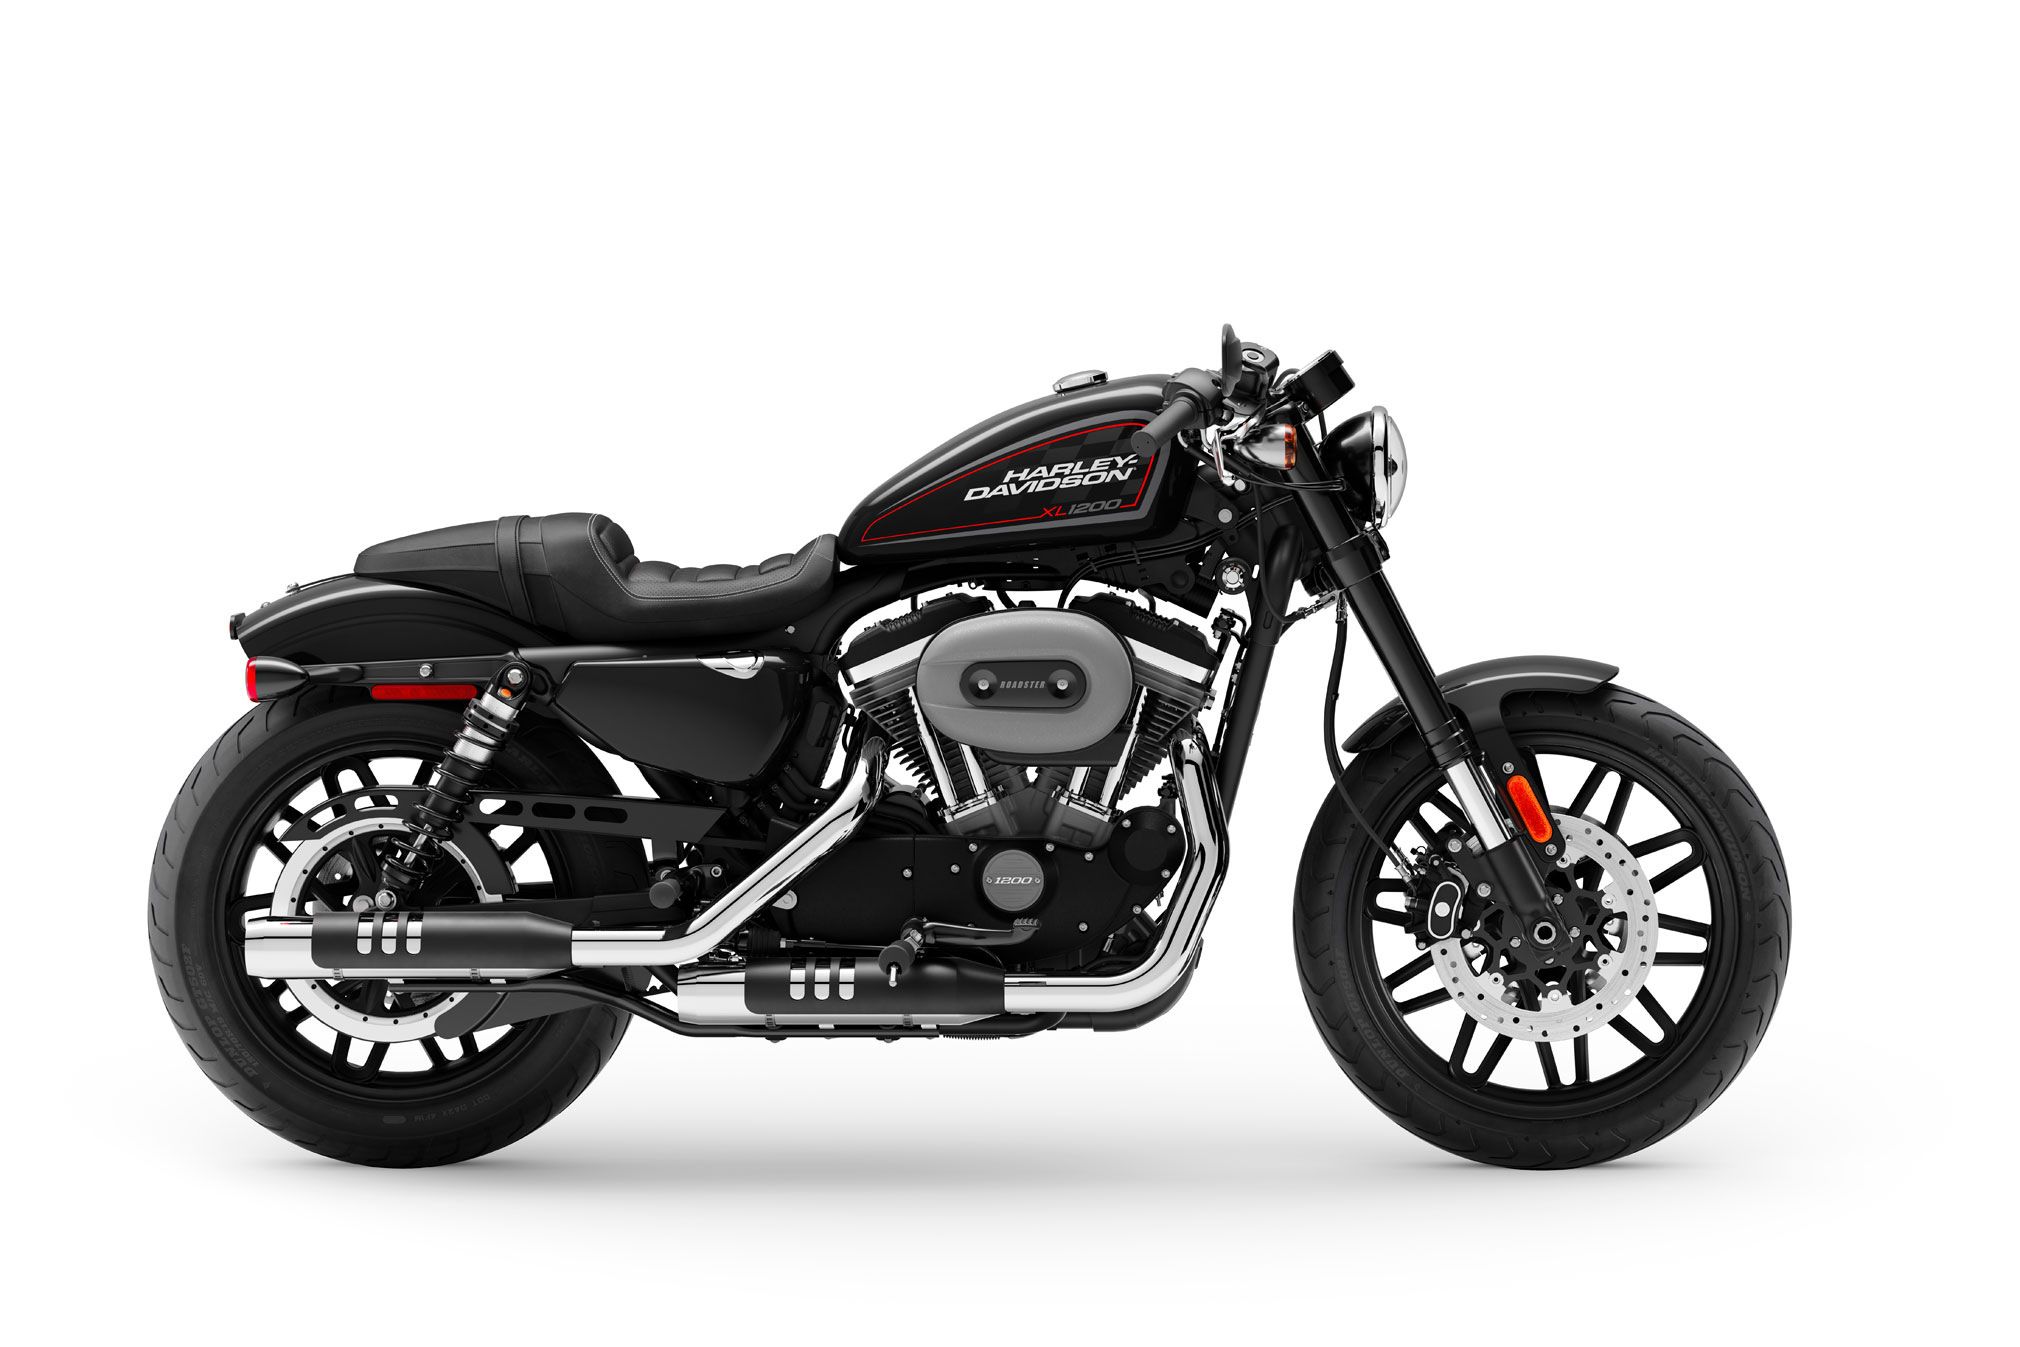 2020 Harley-Davidson Roadster Guide • Total Motorcycle